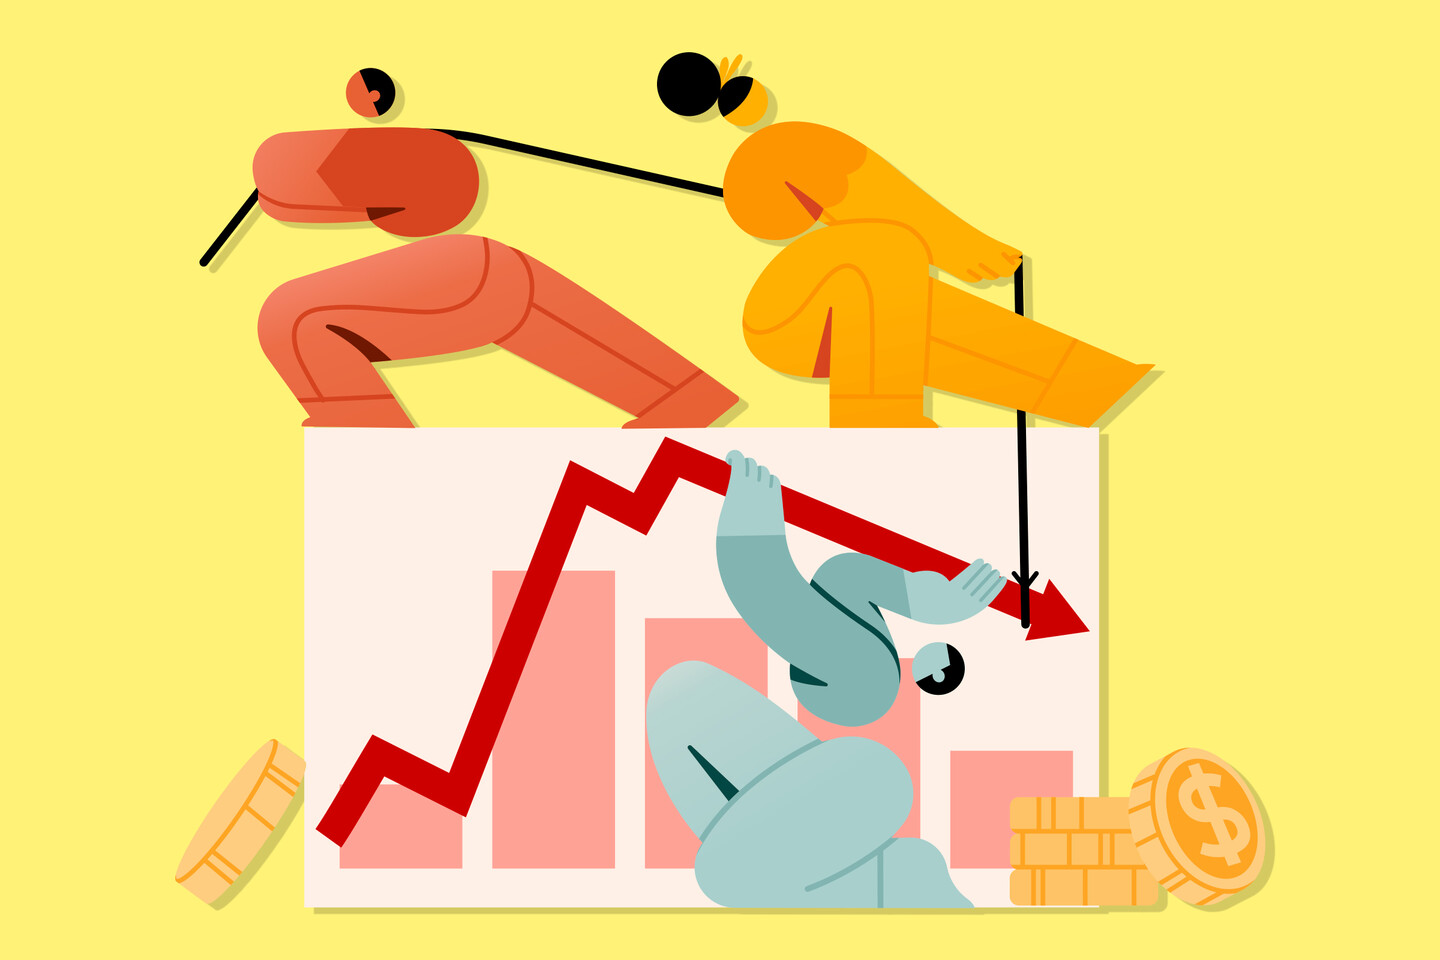 Illustration by Drawkit.io, Multiple characters interacting with finance chart